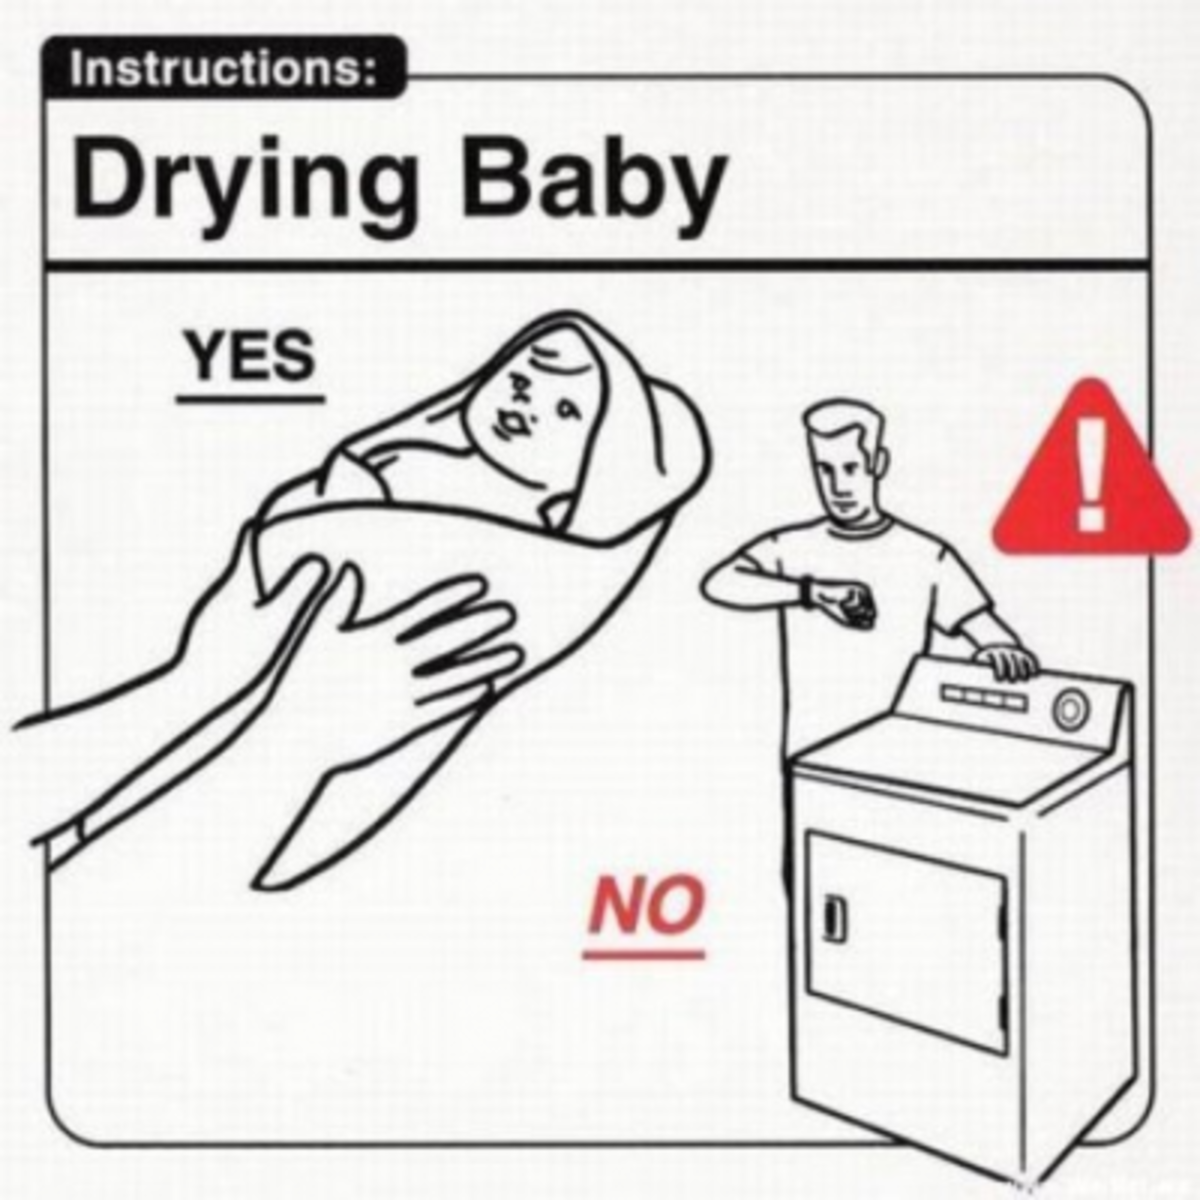 How to Dry your baby